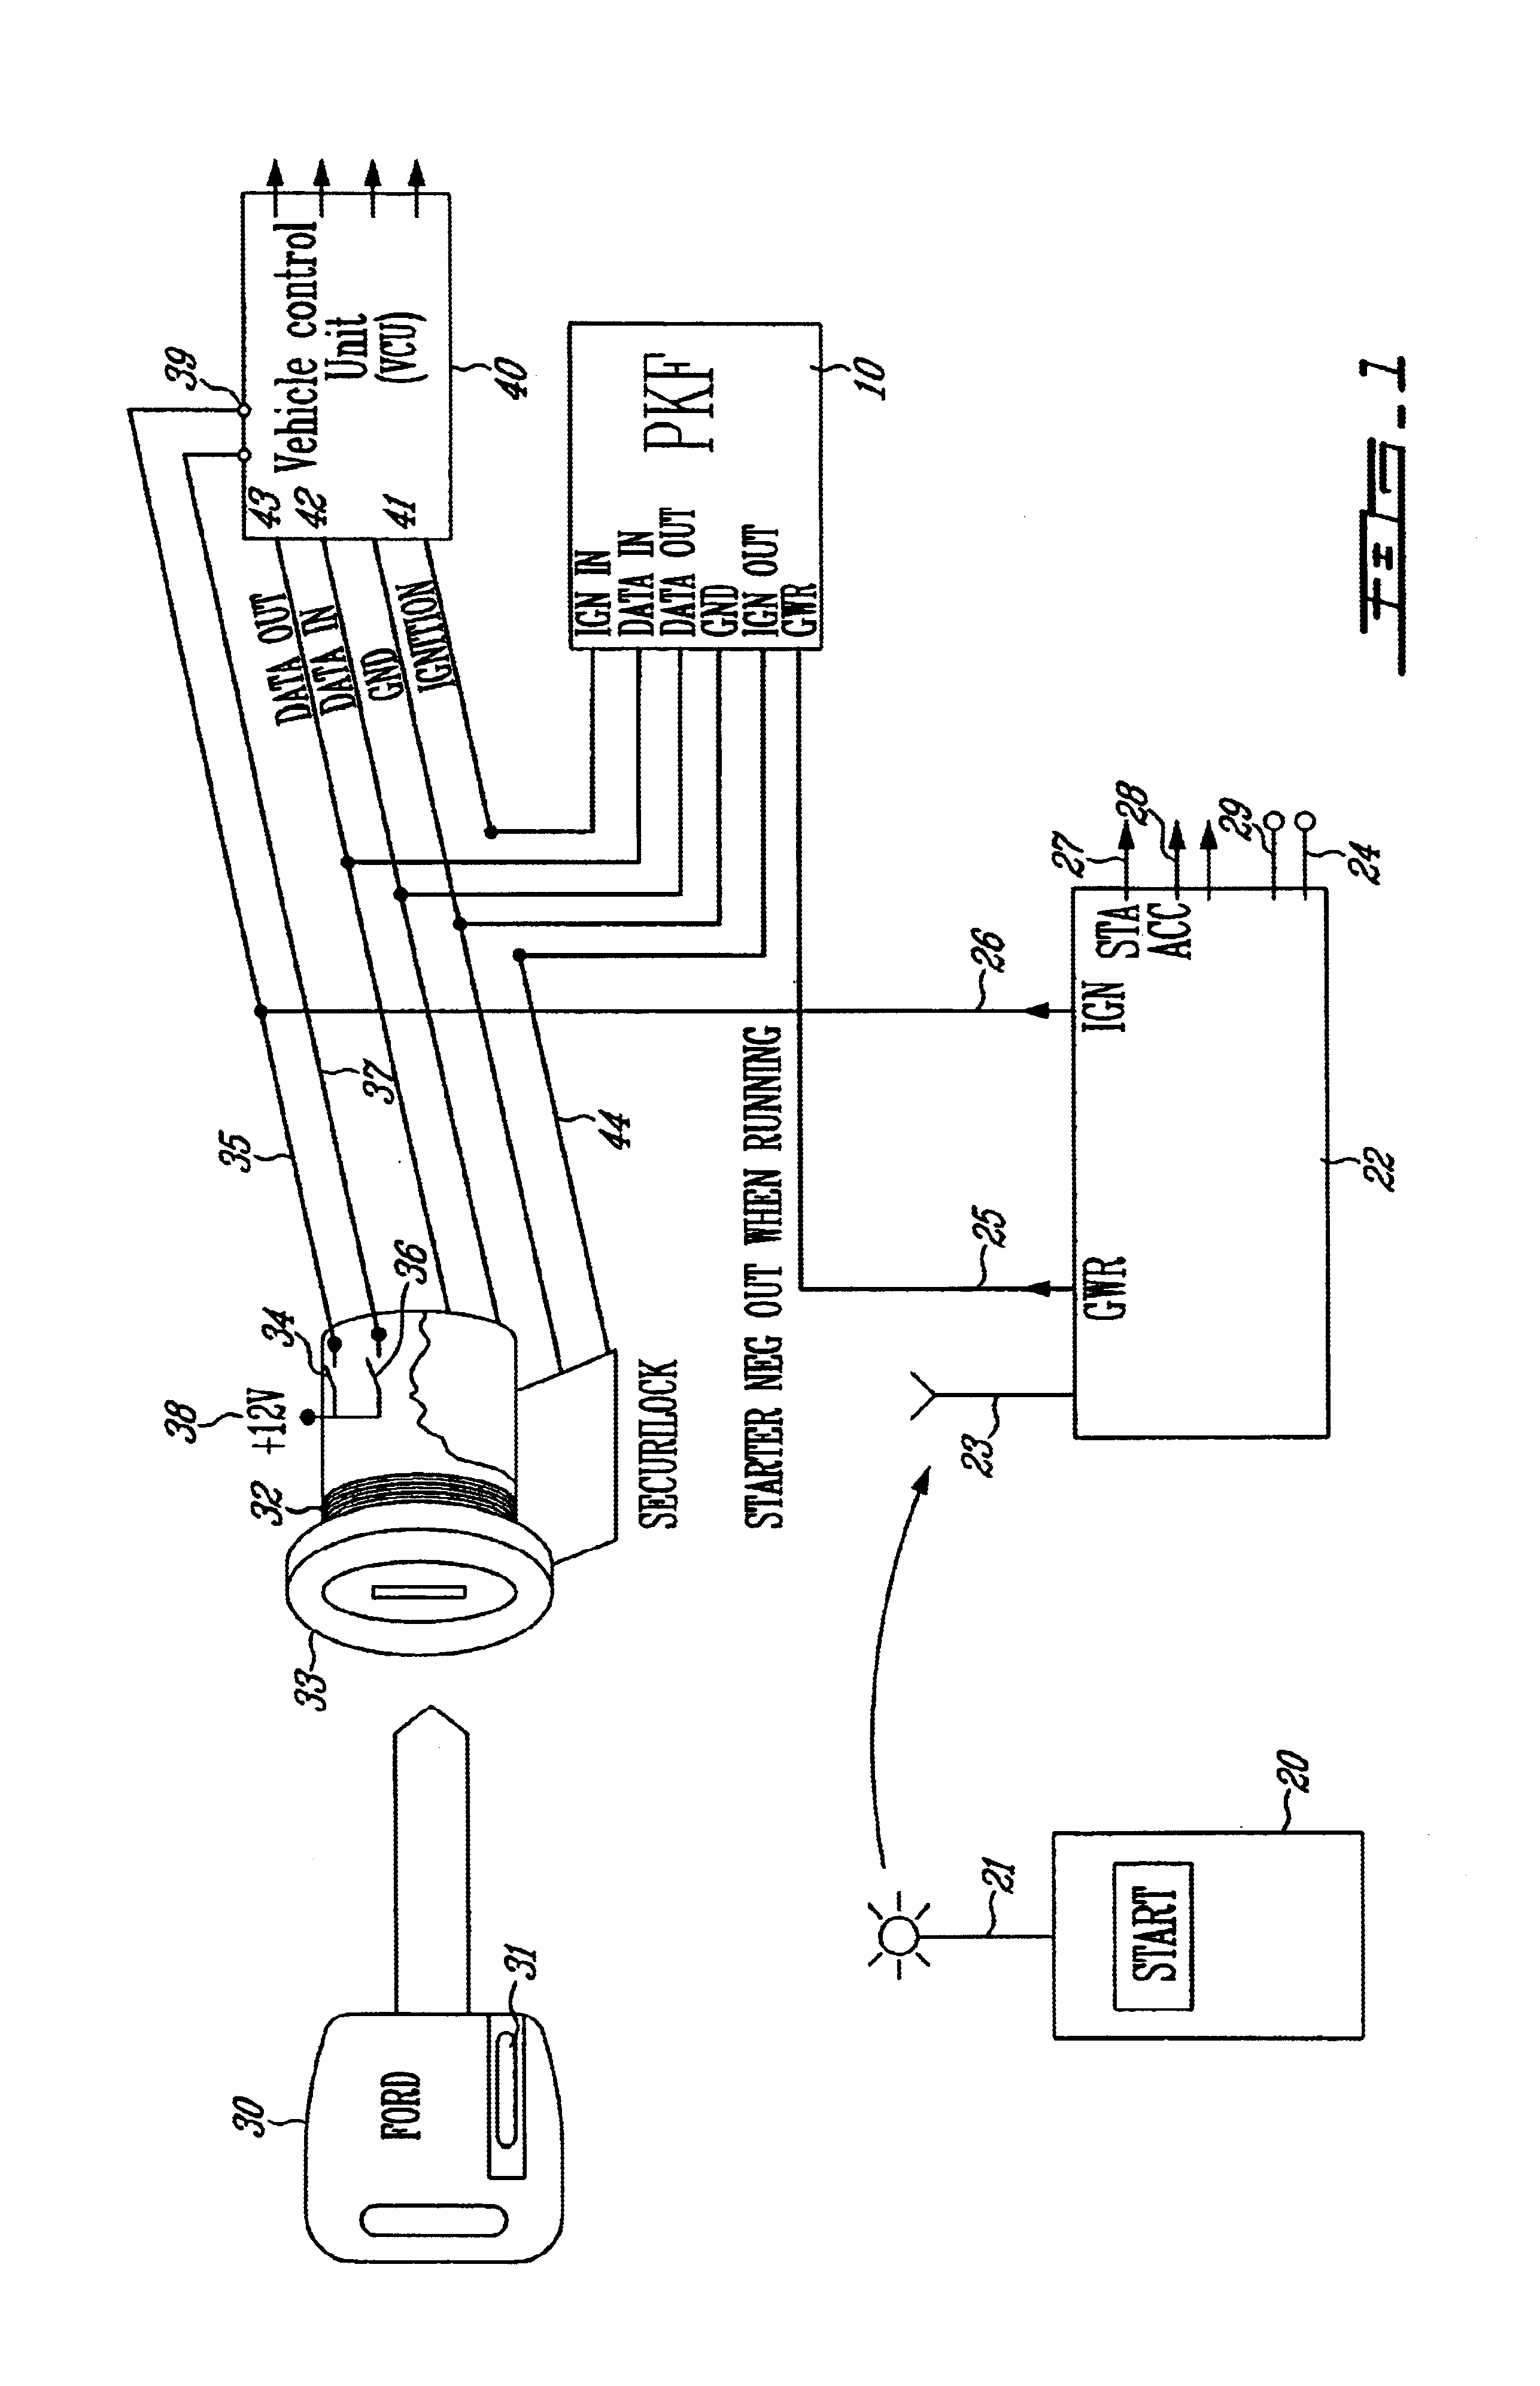 patent us6700220 remote pass key module for anti theft system equipped vehicles and